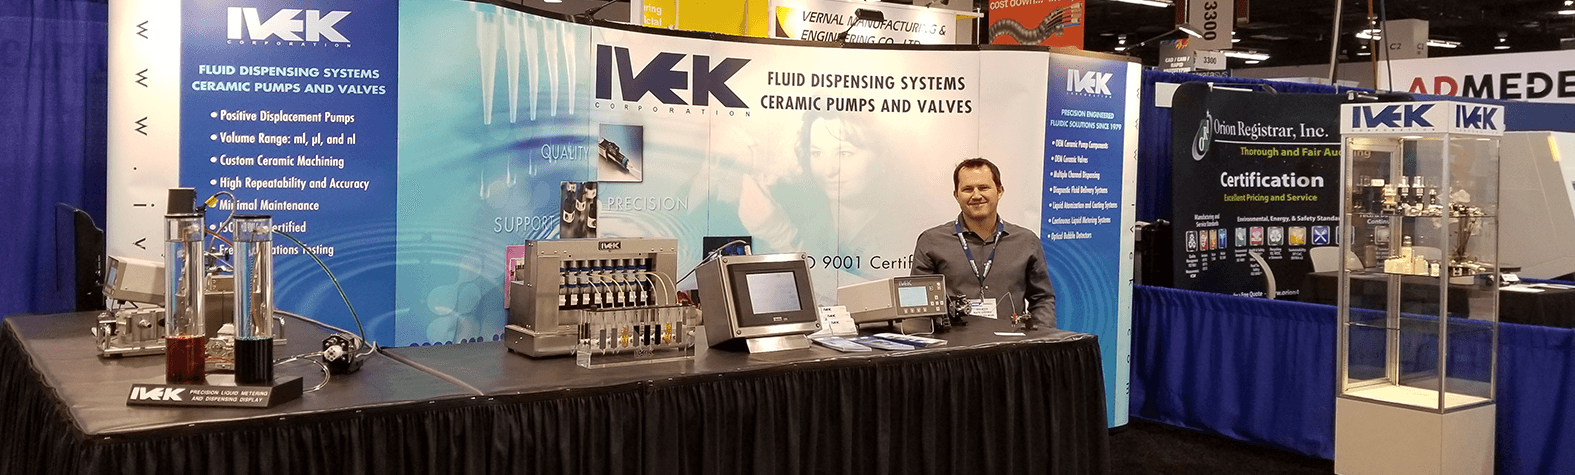 IVEK-trade-show-booth-attendance